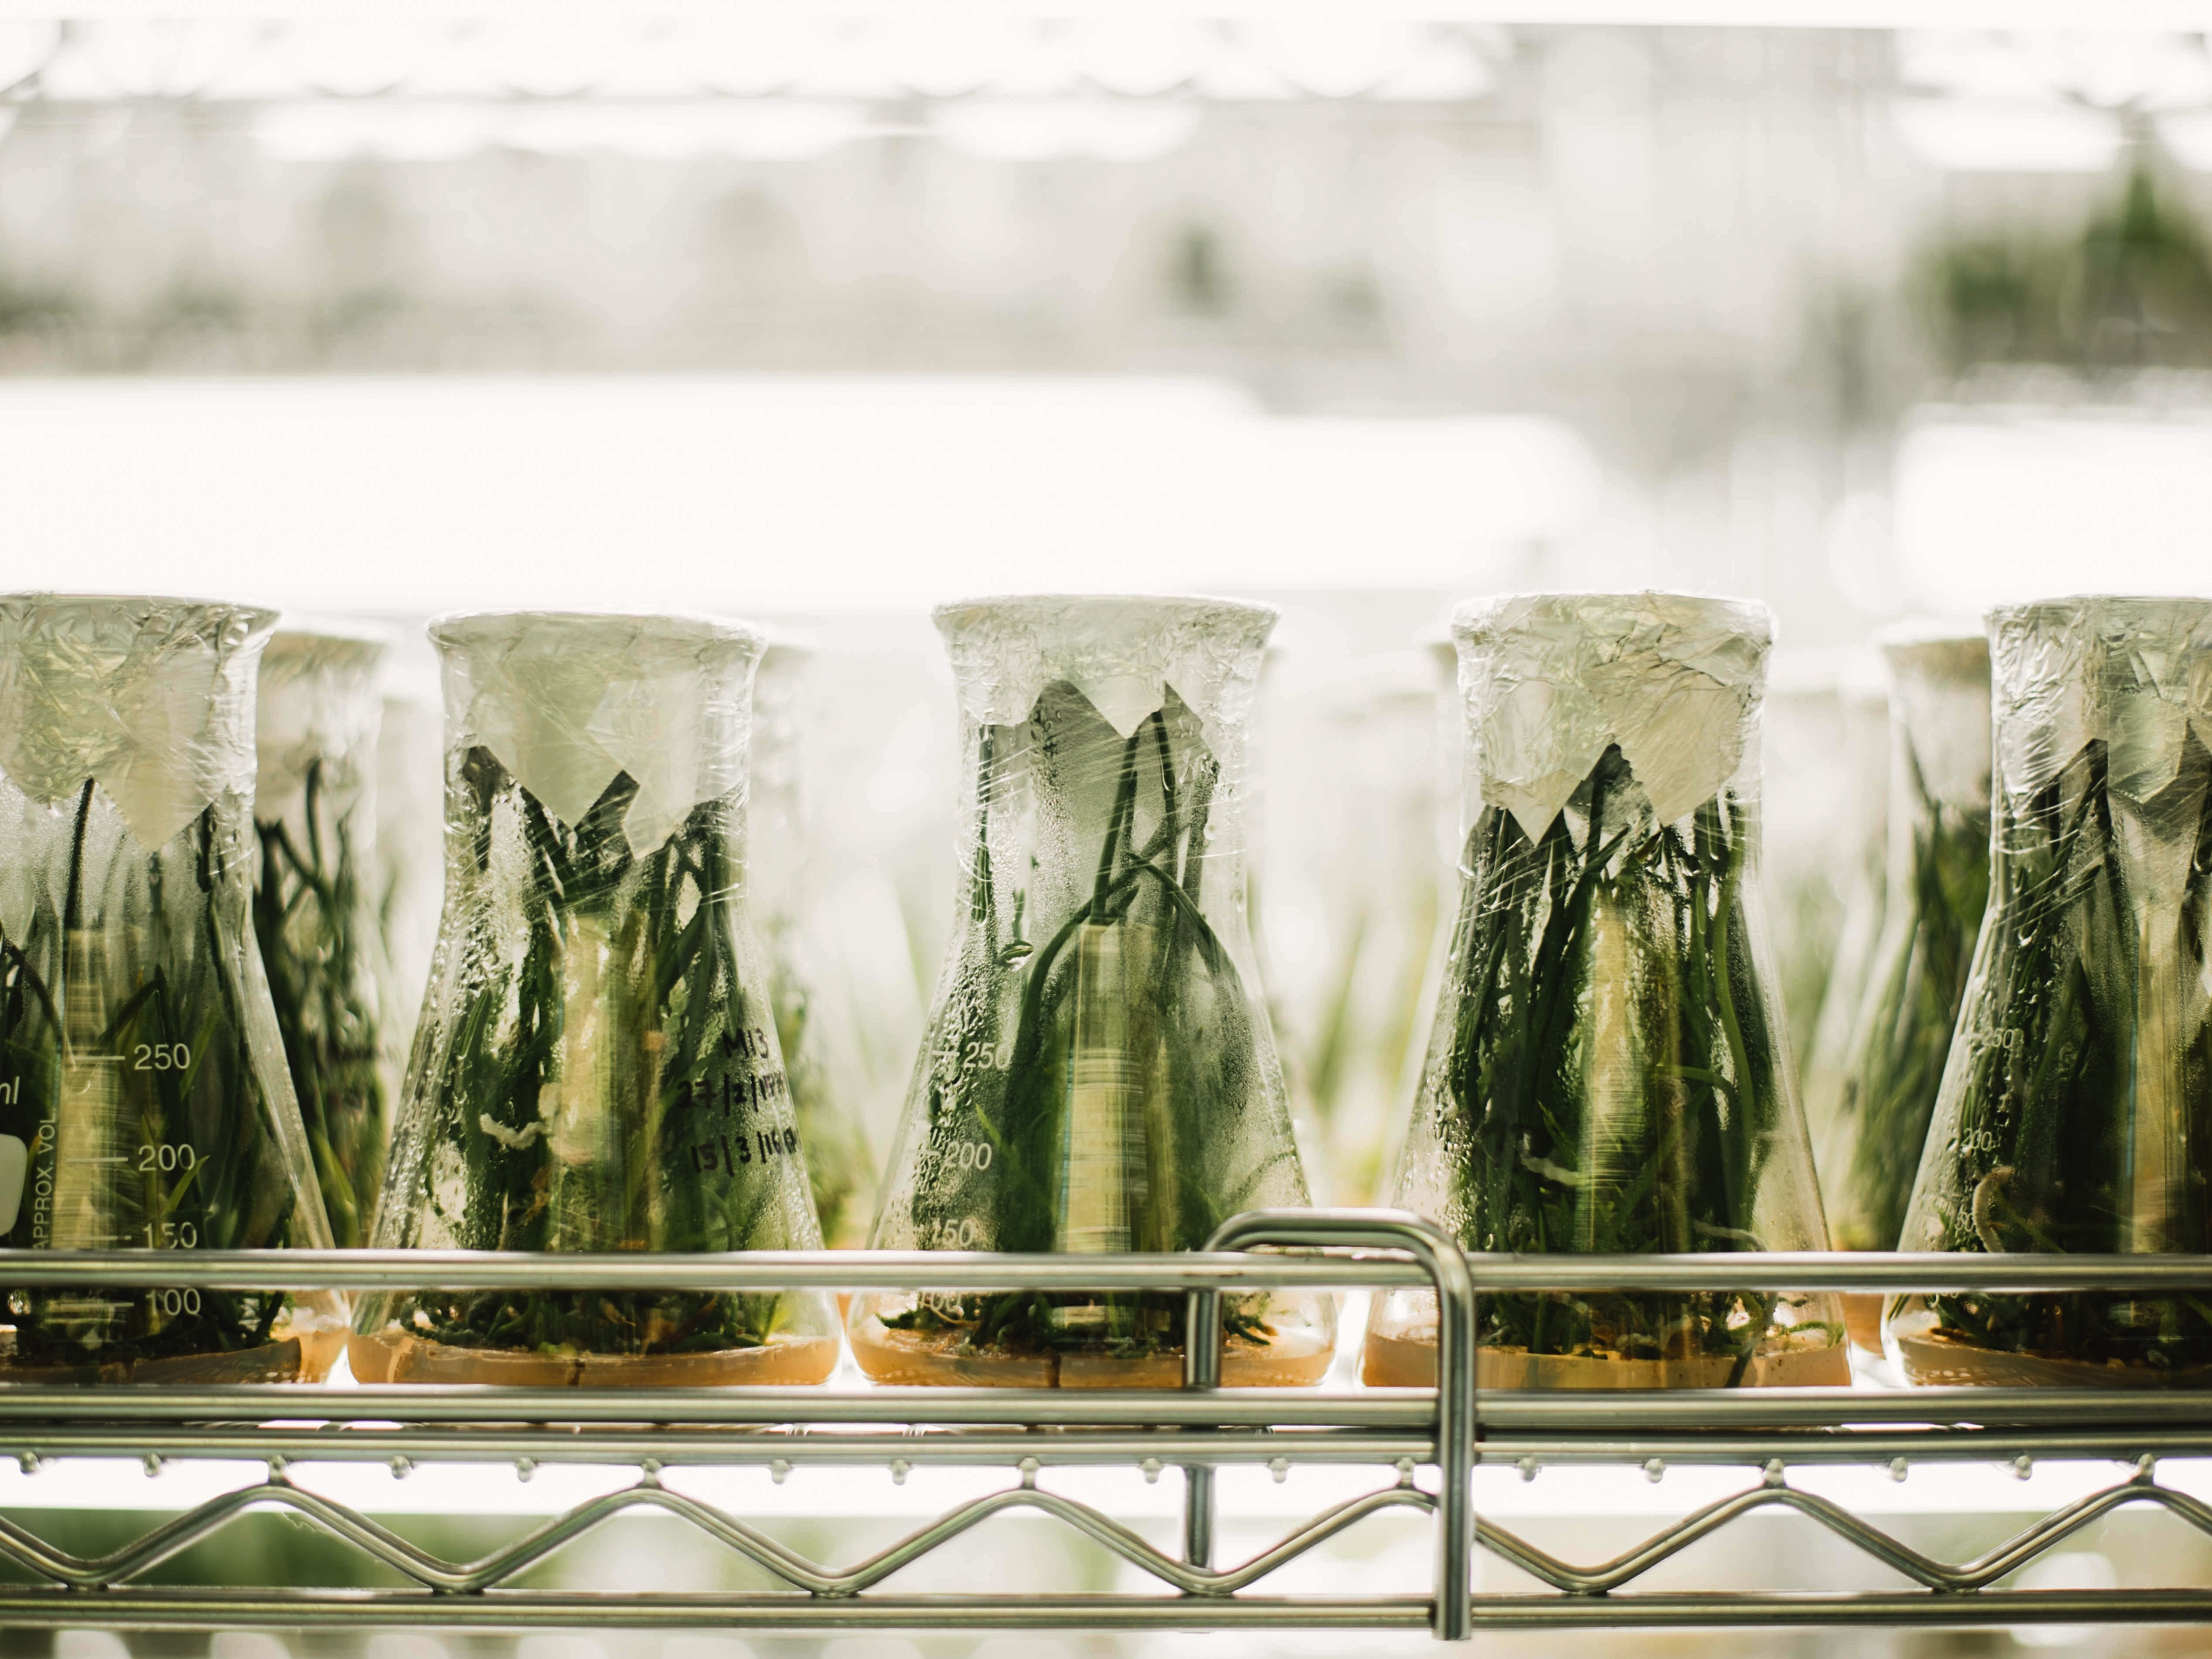 Herbal plants in the beakers are observed for pharmaceutical experiment. Image credit: Chuttersanp/Unsplash